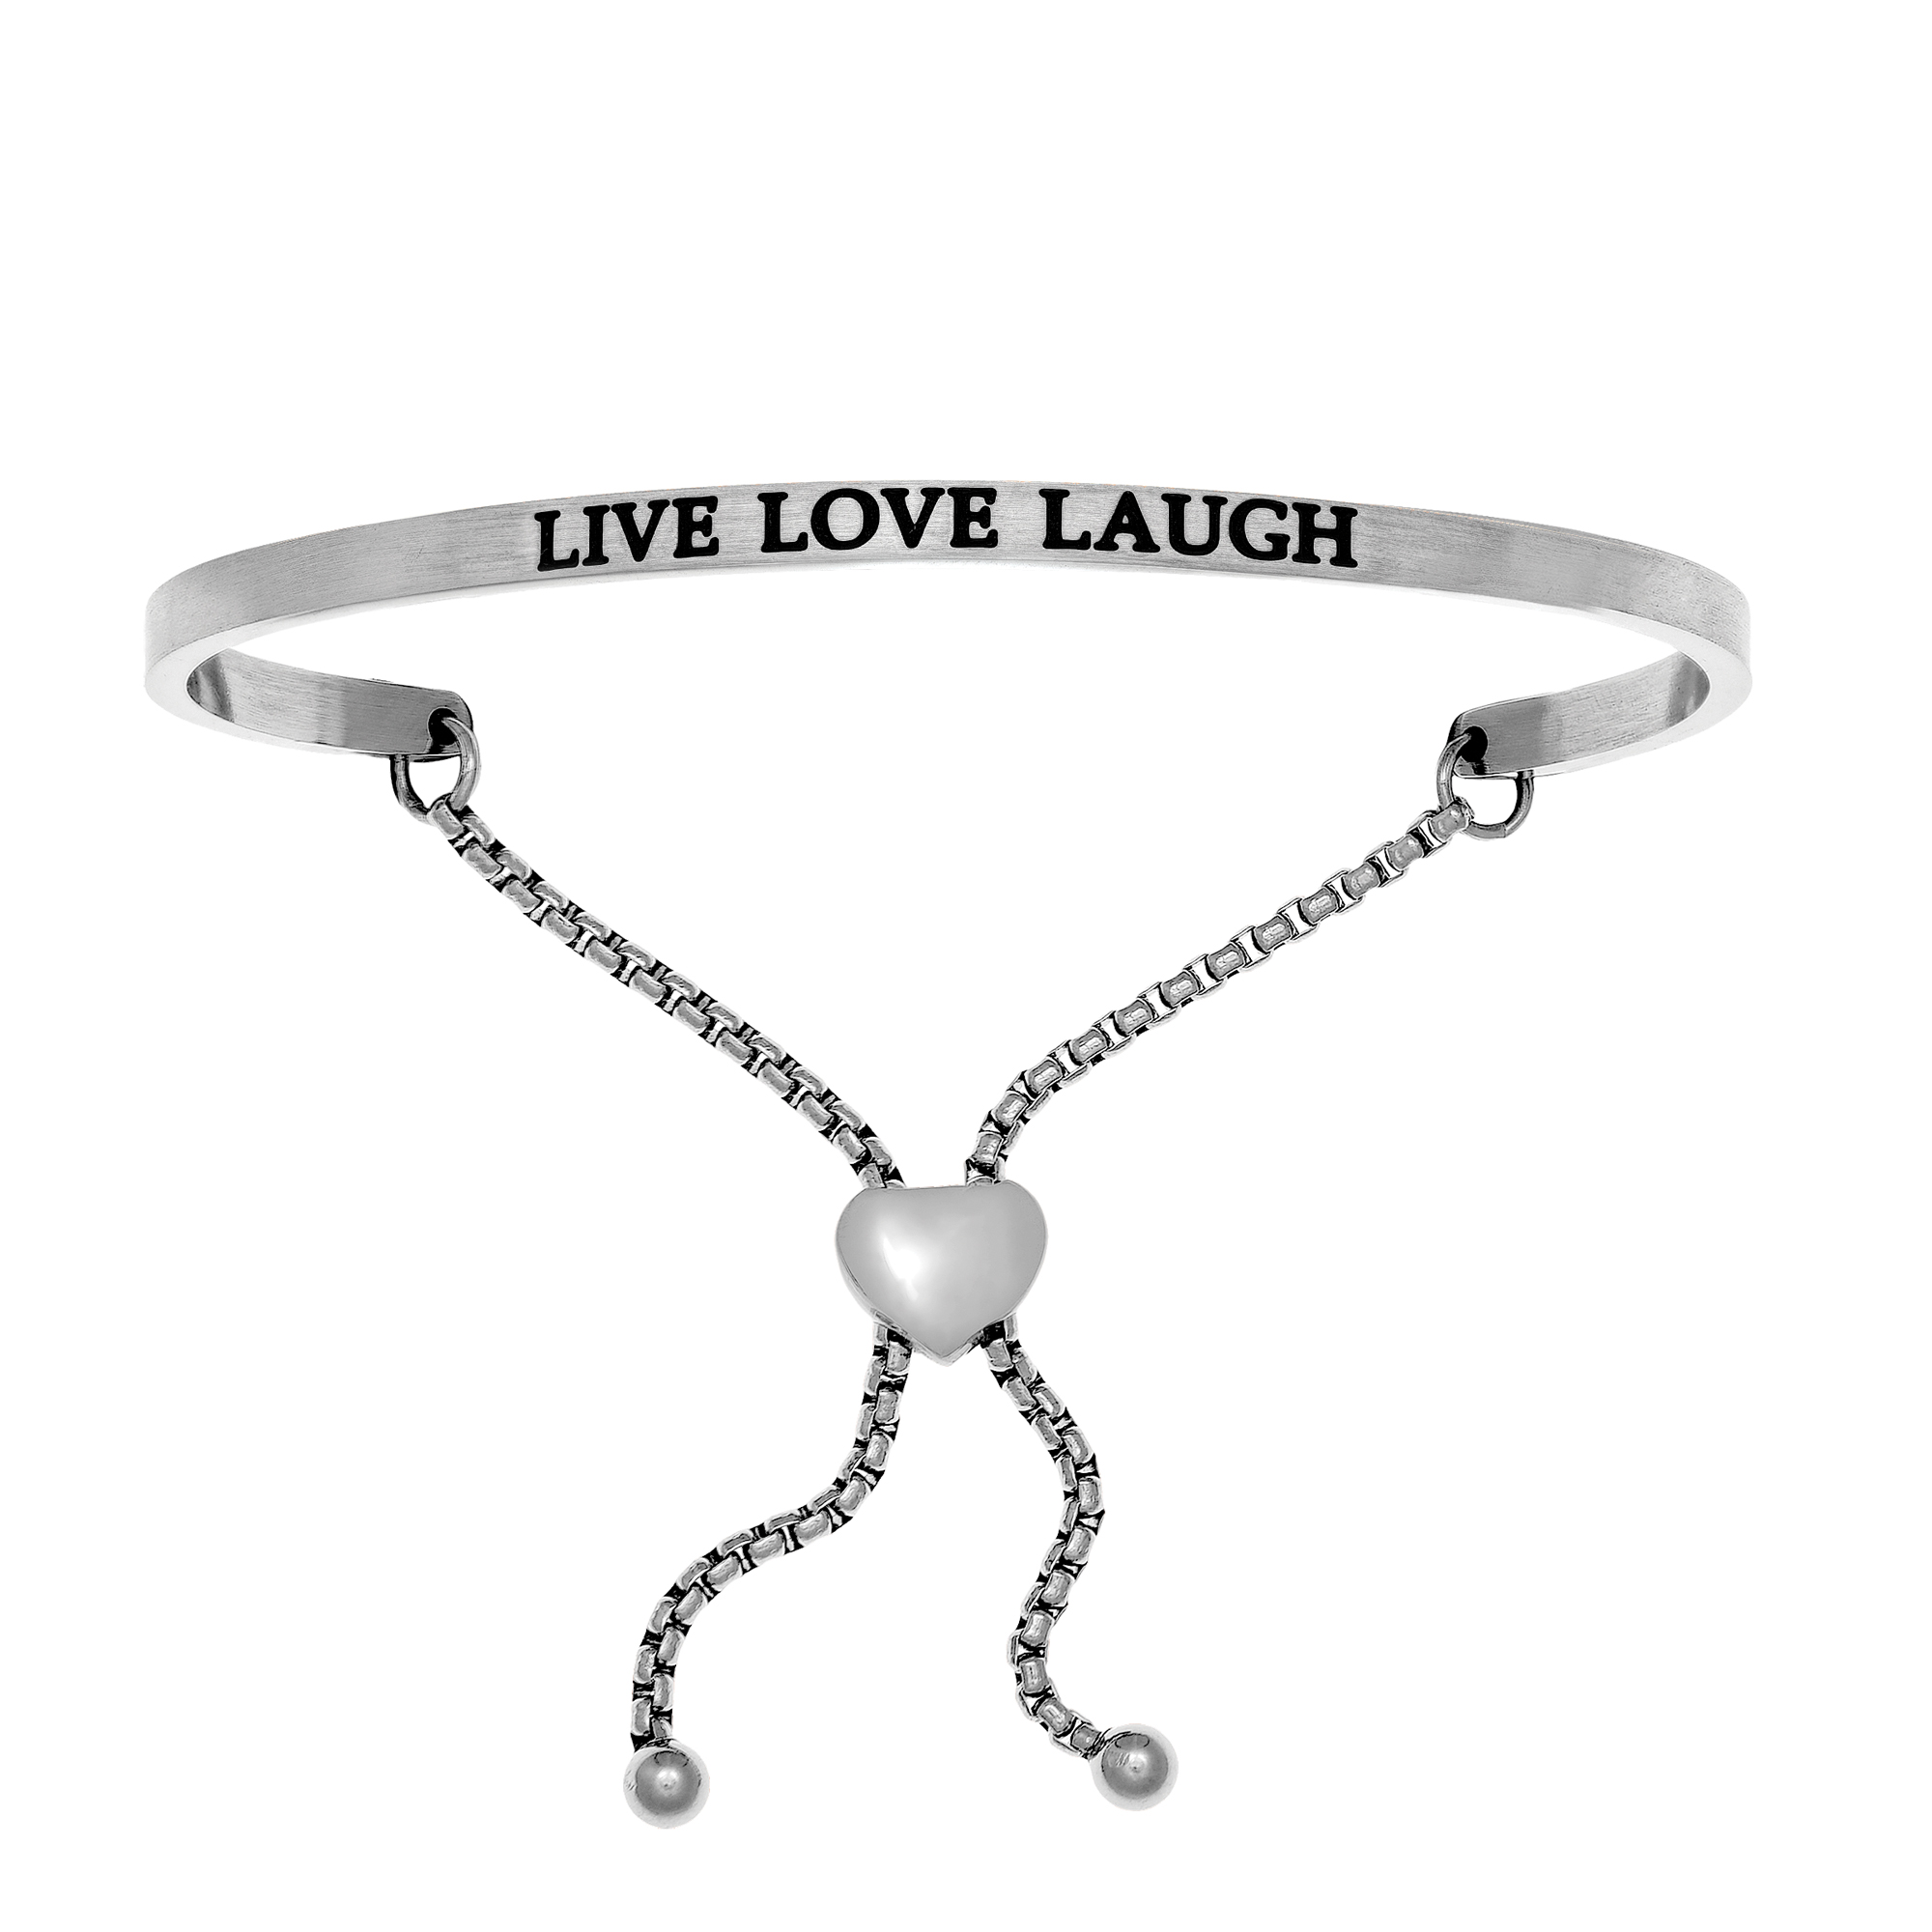 Intuitions Stainless Steel LIVE LOVE LAUGH Diamond Accent Adjustable Bracelet Each of these bracelets carries a personal message of inspiration, spirituality or just plain fun. Meant to be worn alone or stacked together for a smart, contemporary look, they're a great self-purchase or as a gift for family or friends. Intuitions are made of stainless steel and come in two styles standard cuff or friendship and fit practically any wrist. Intuitions Jewelry makes the difference in your daily life by designing and creating bracelets and bangles with motivational quotes to inspire you and your loved ones. Giving back $.25 of each bracelet to BABY2BABY